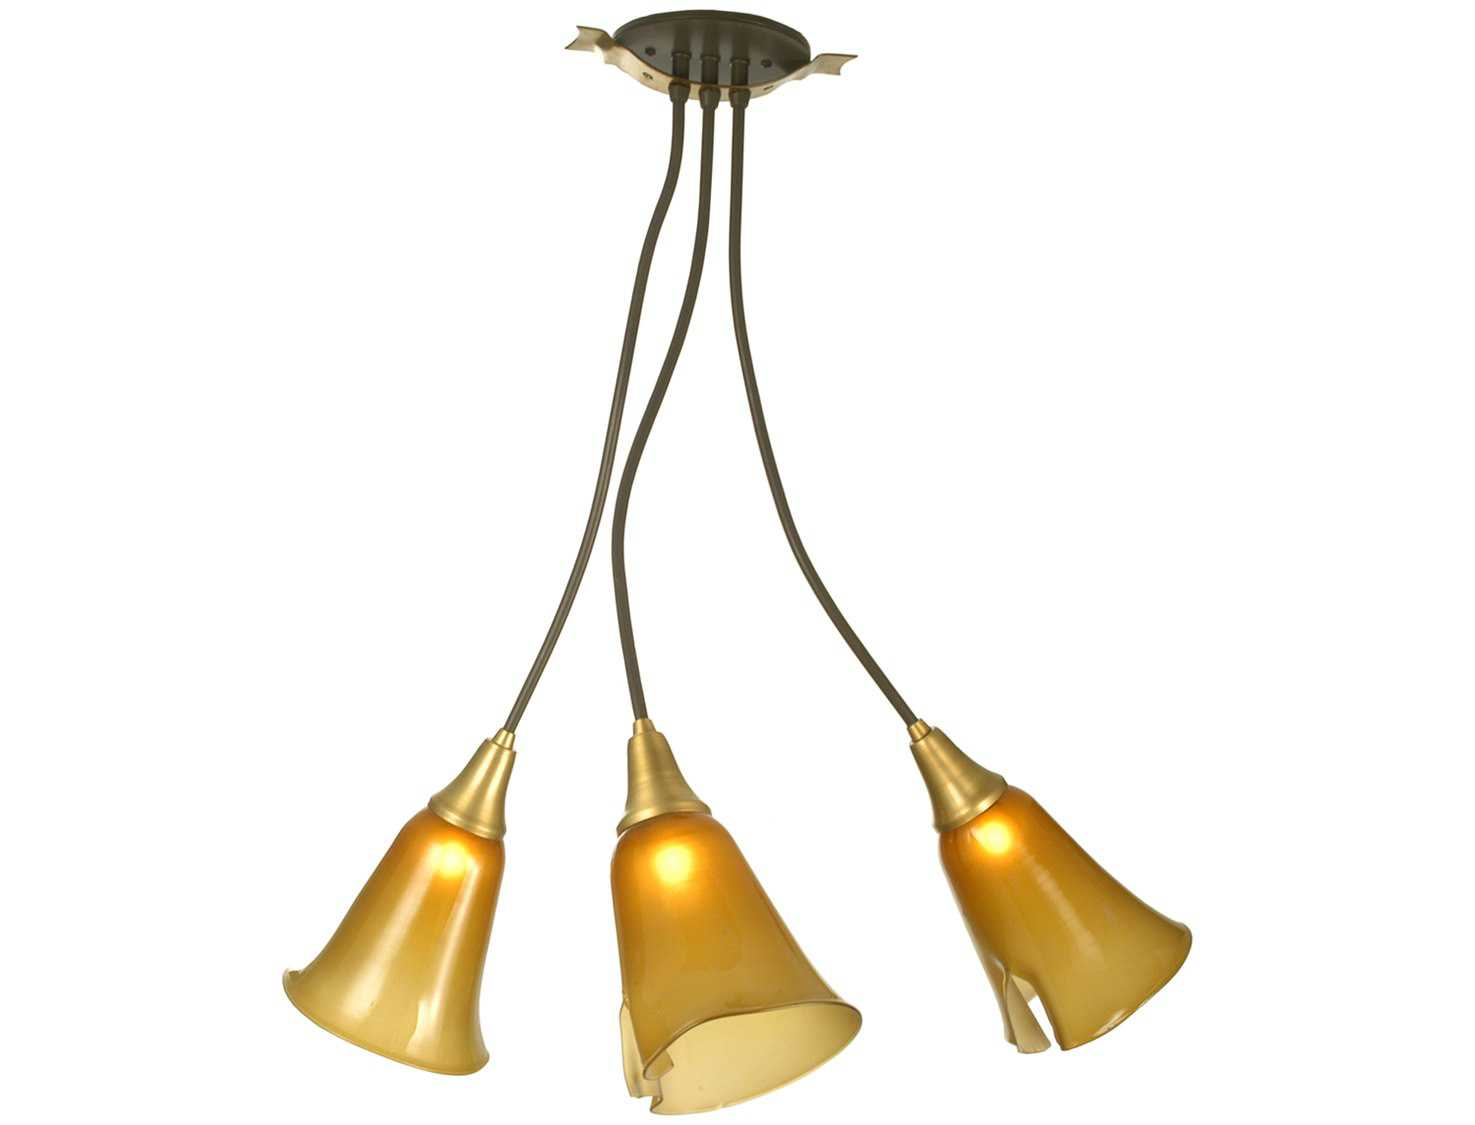 Pendant lighting fixtures